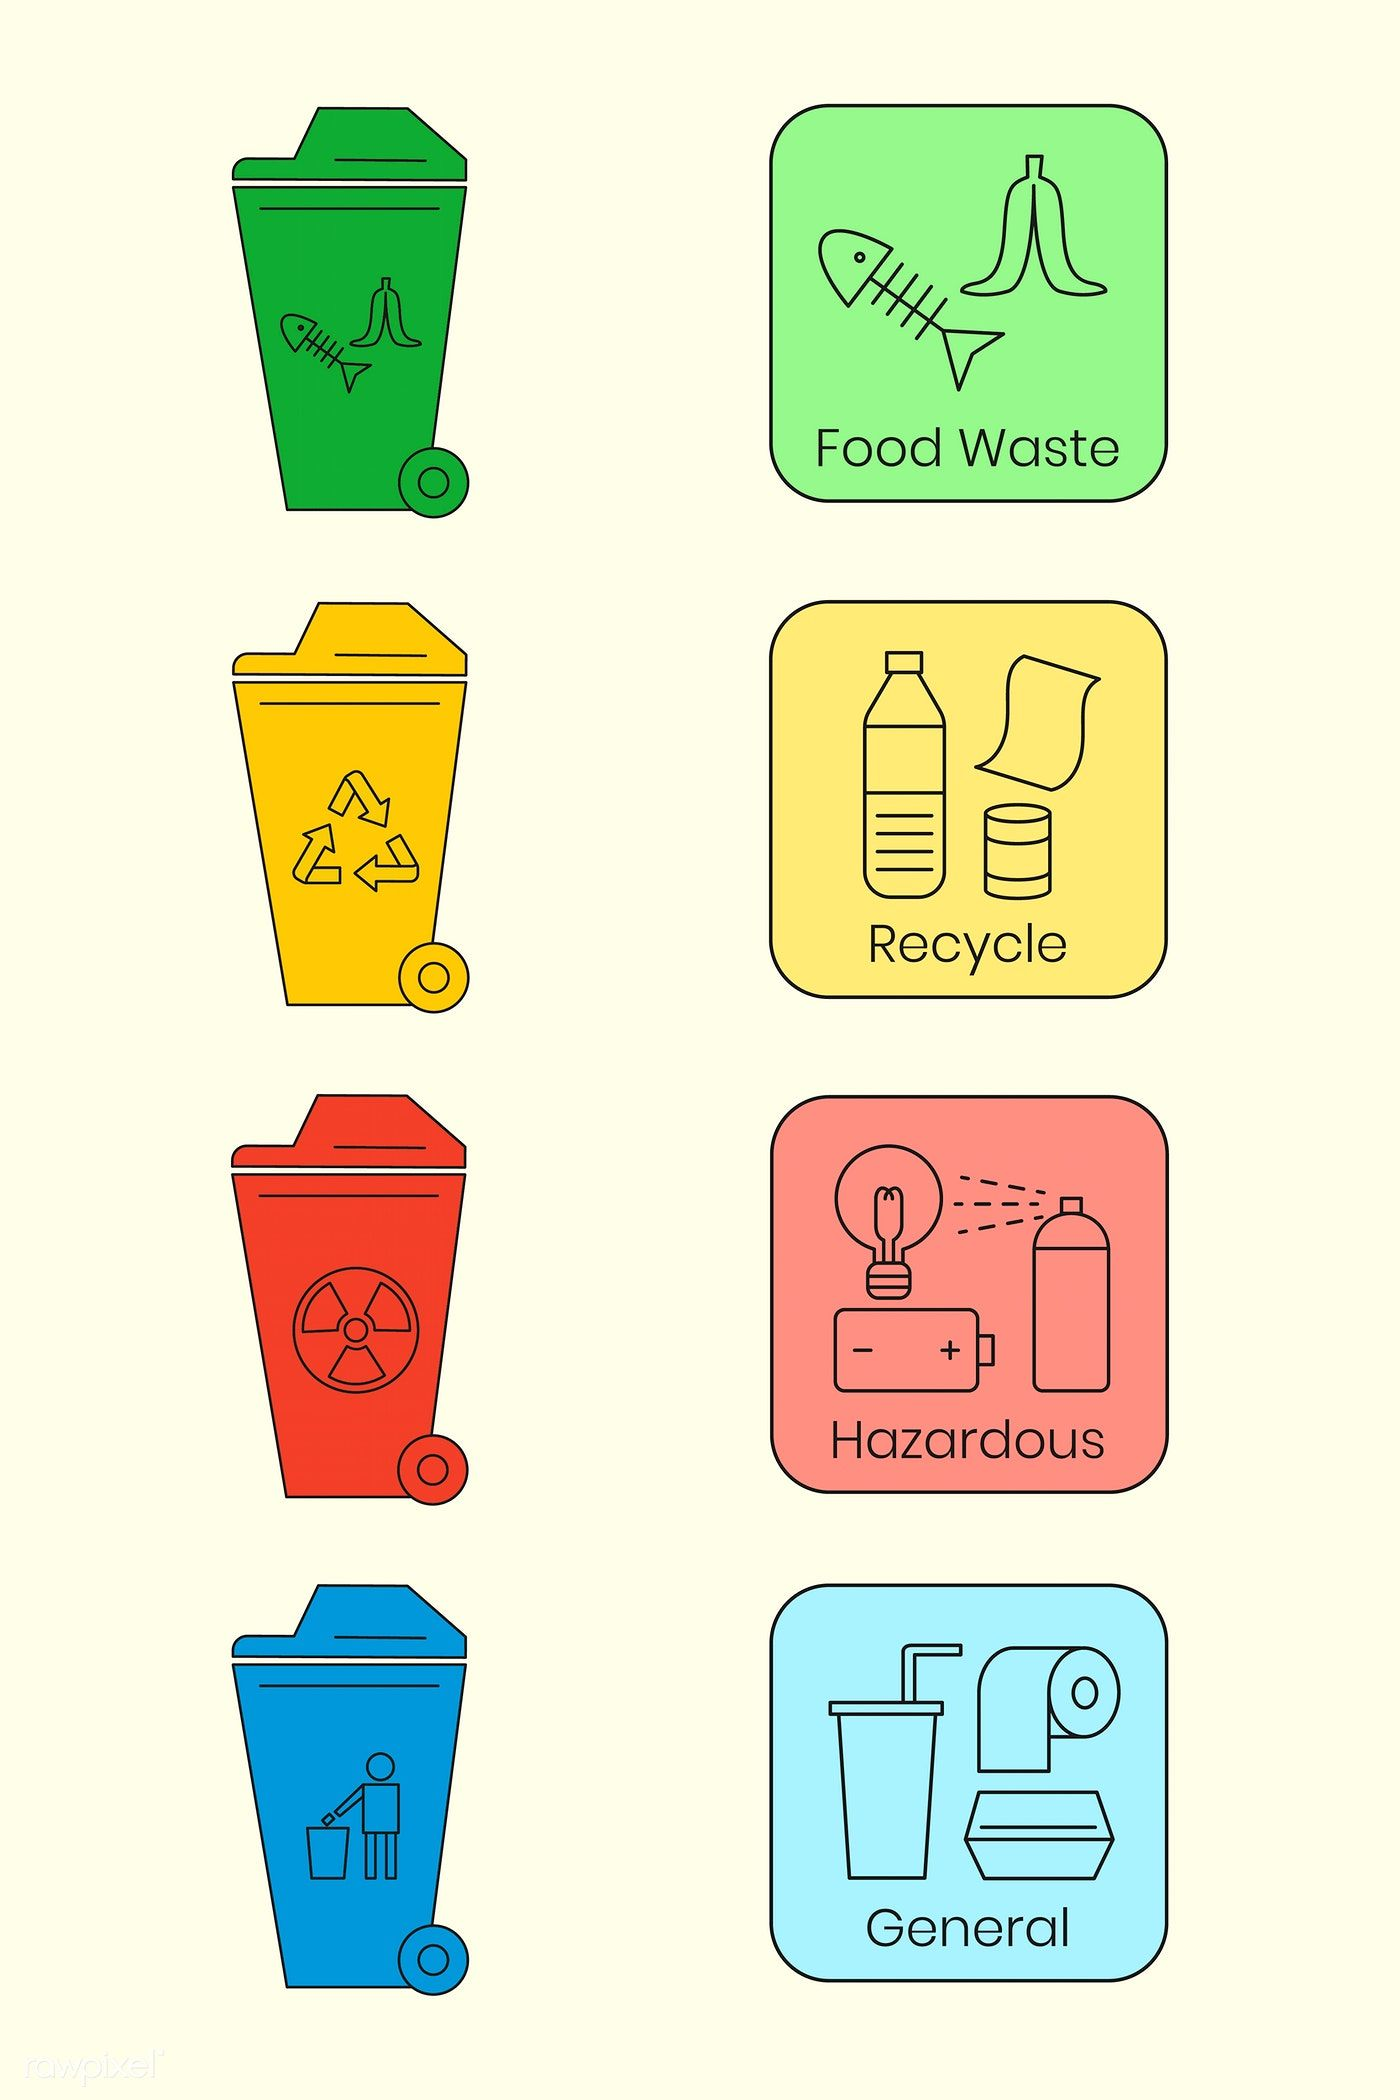 Waste management icon design elements vector set free